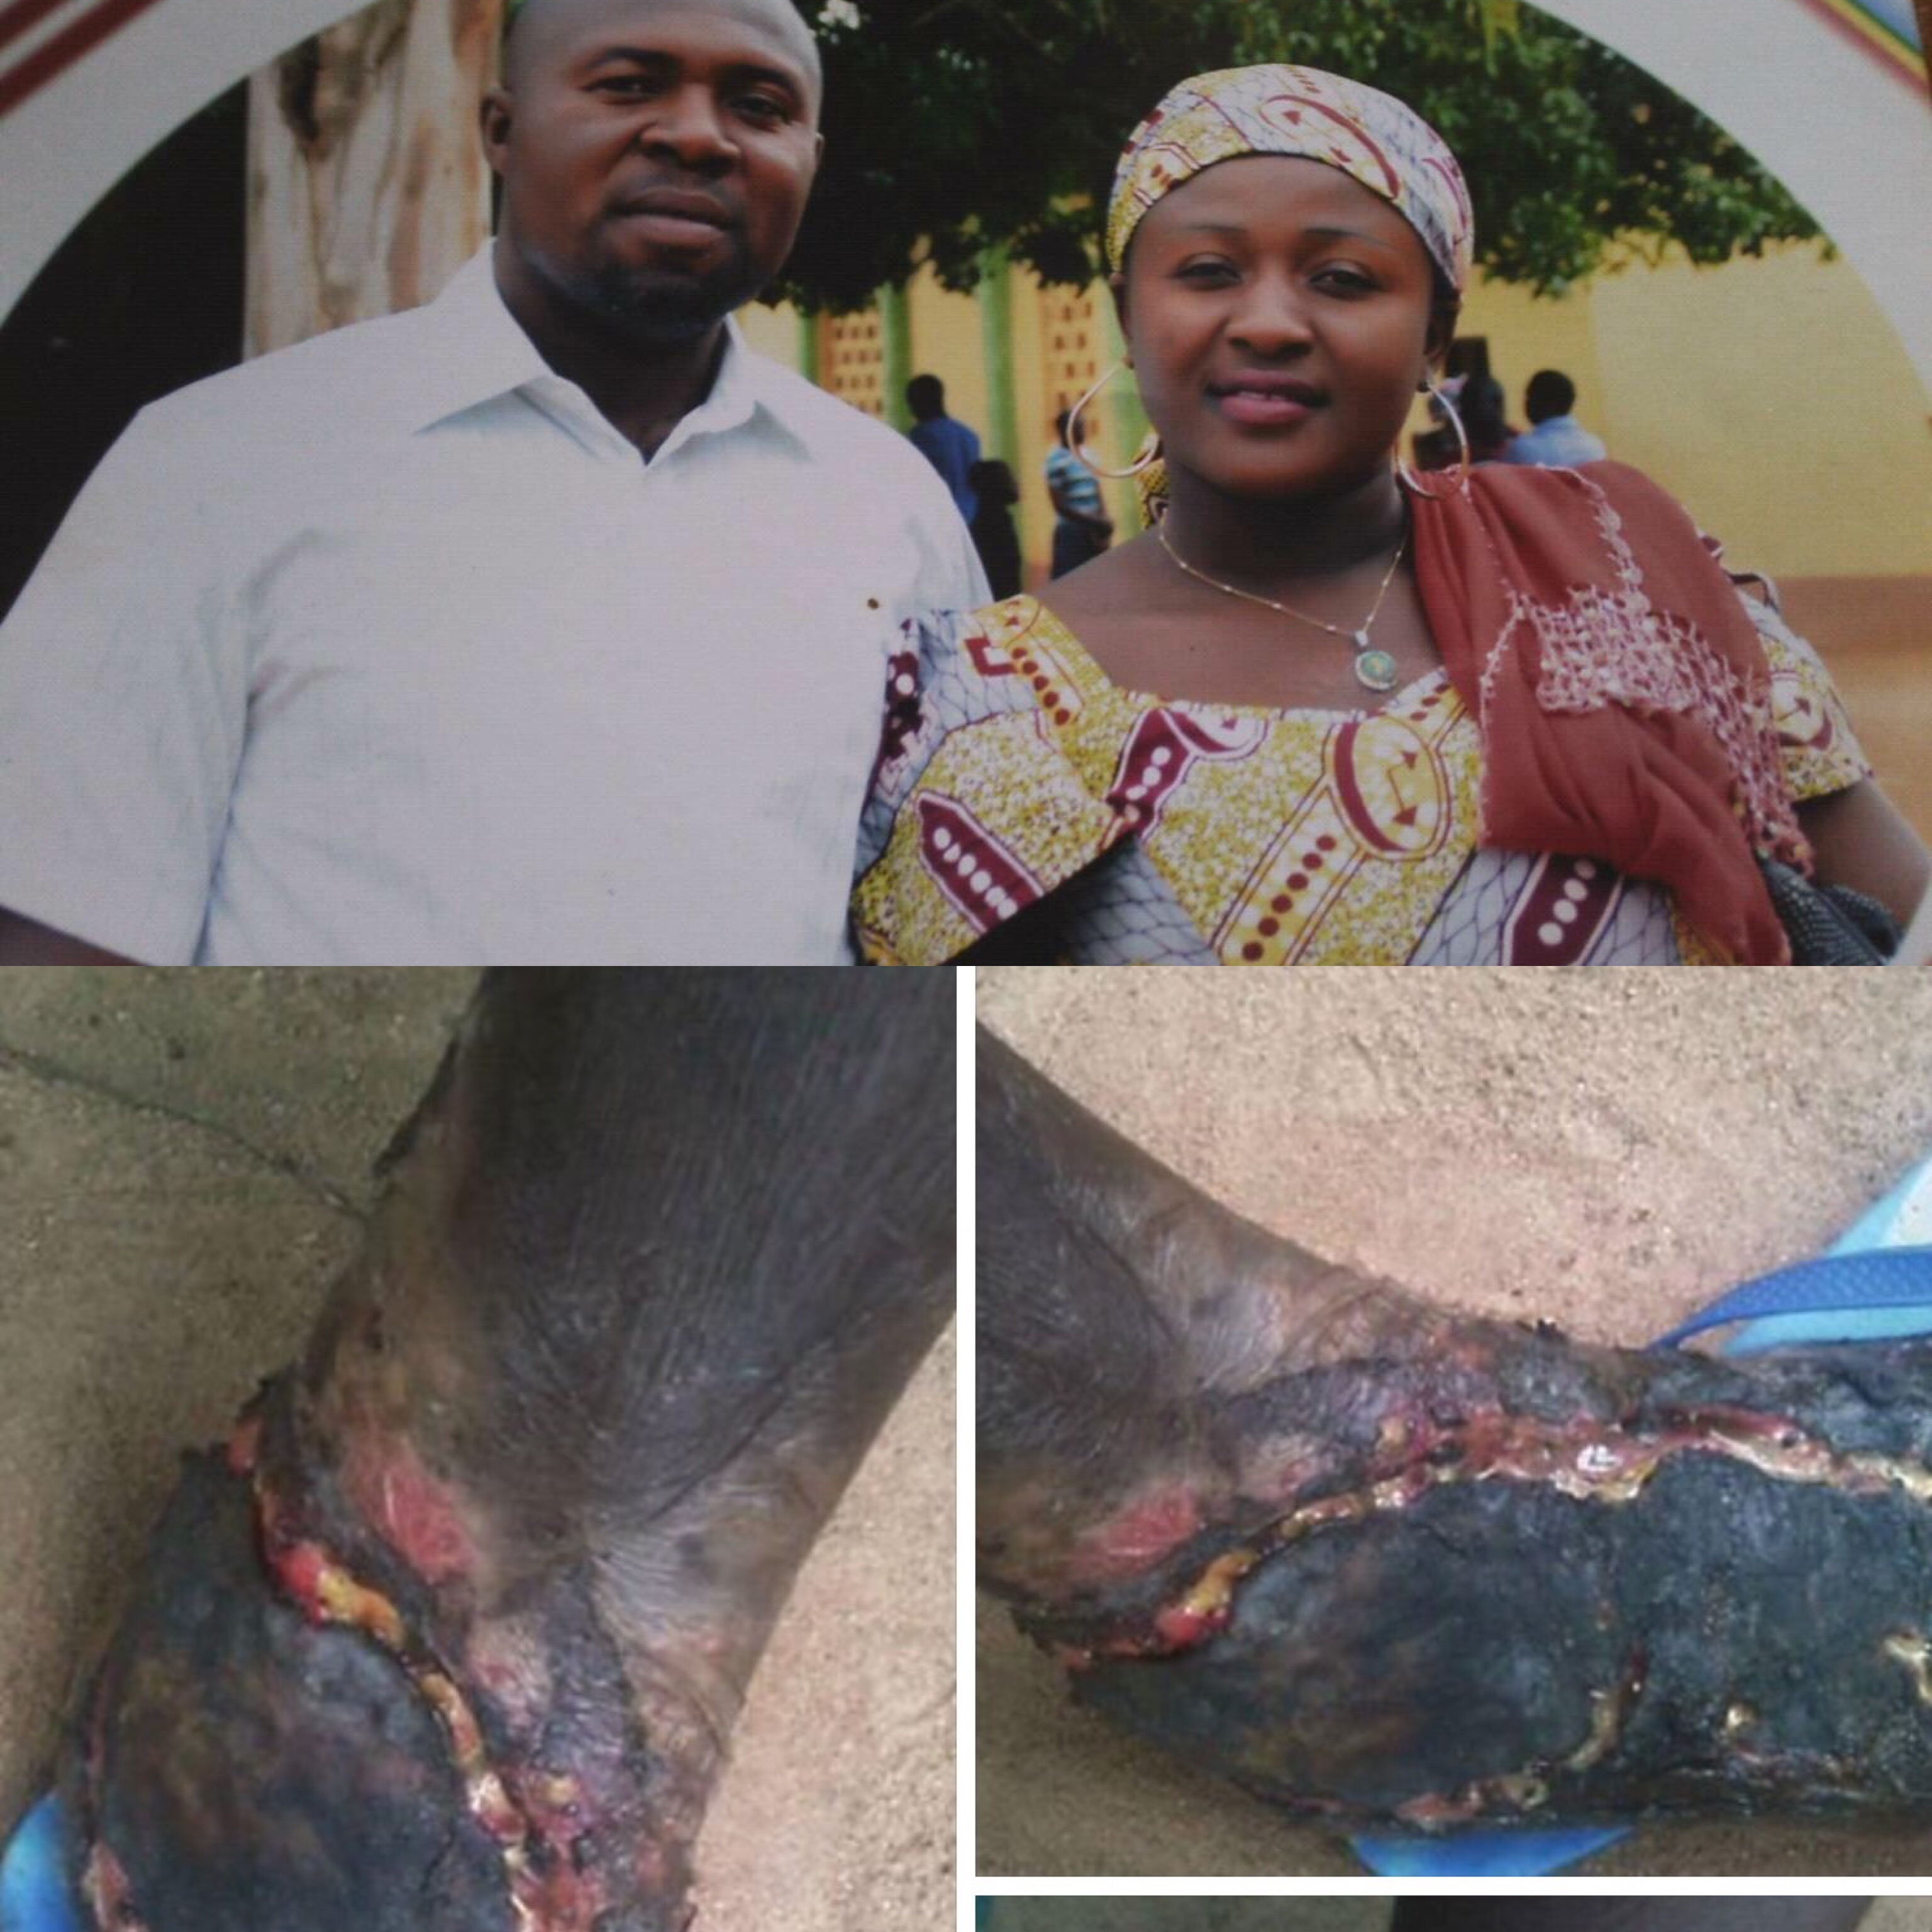 Man Convinced His Wife's Leg Is Rotting Because Of 'Witch Fire' Cries For Help On Facebook